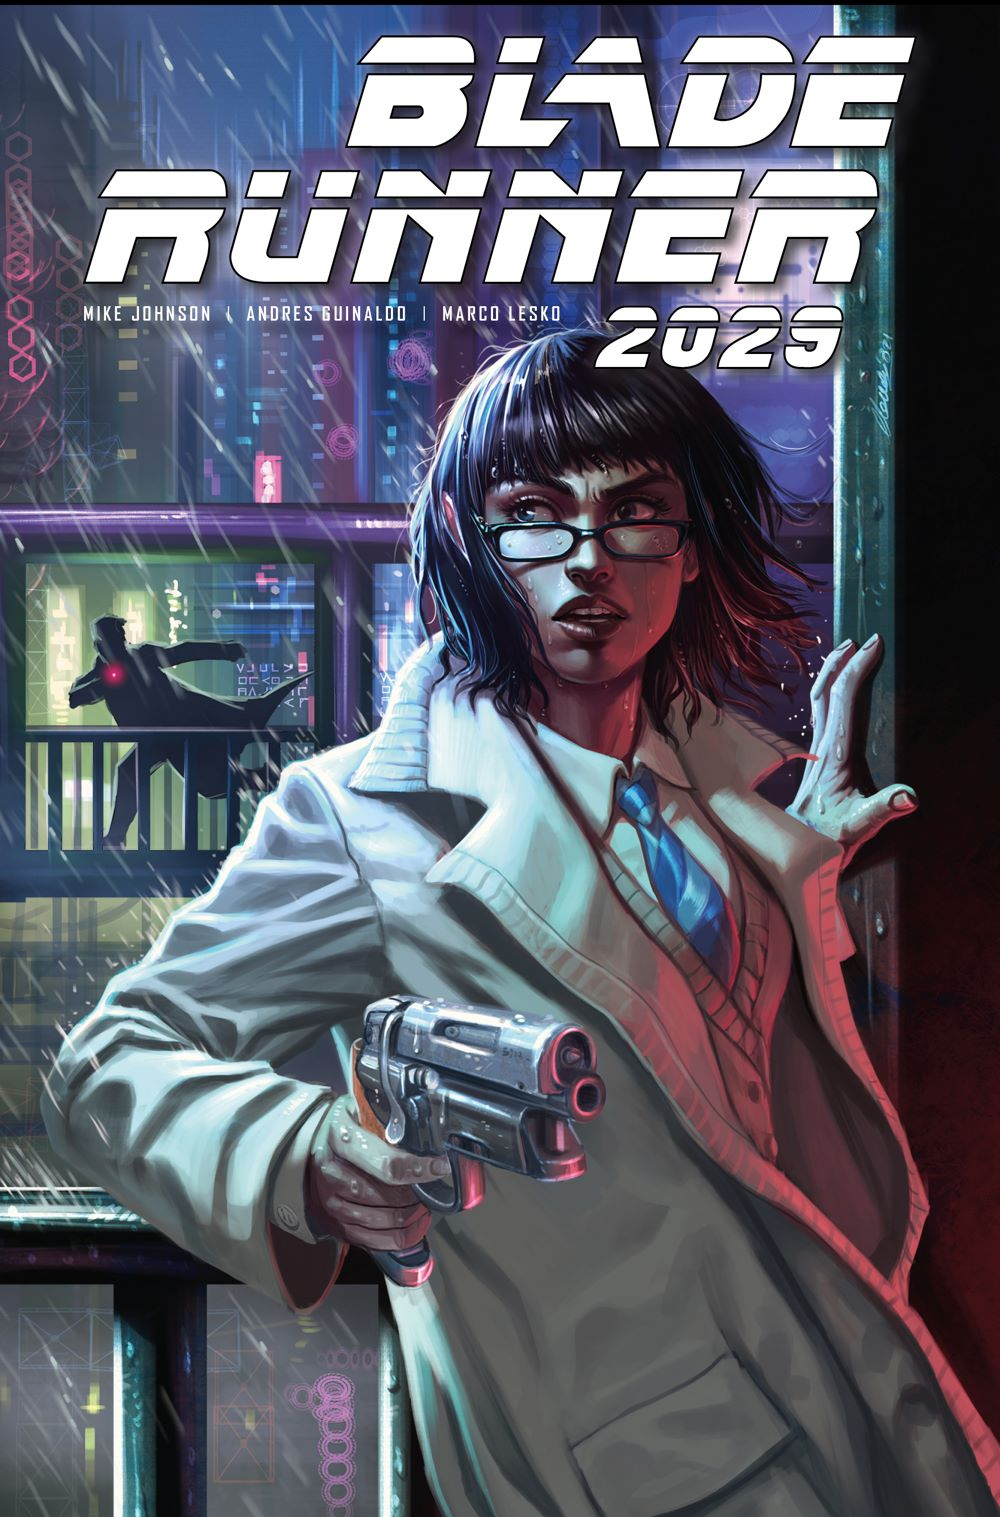 BLADE-RUNNER-2029-5D-CLAUDIA-IANNICELLO Titan Comics June 2021 Solicitations